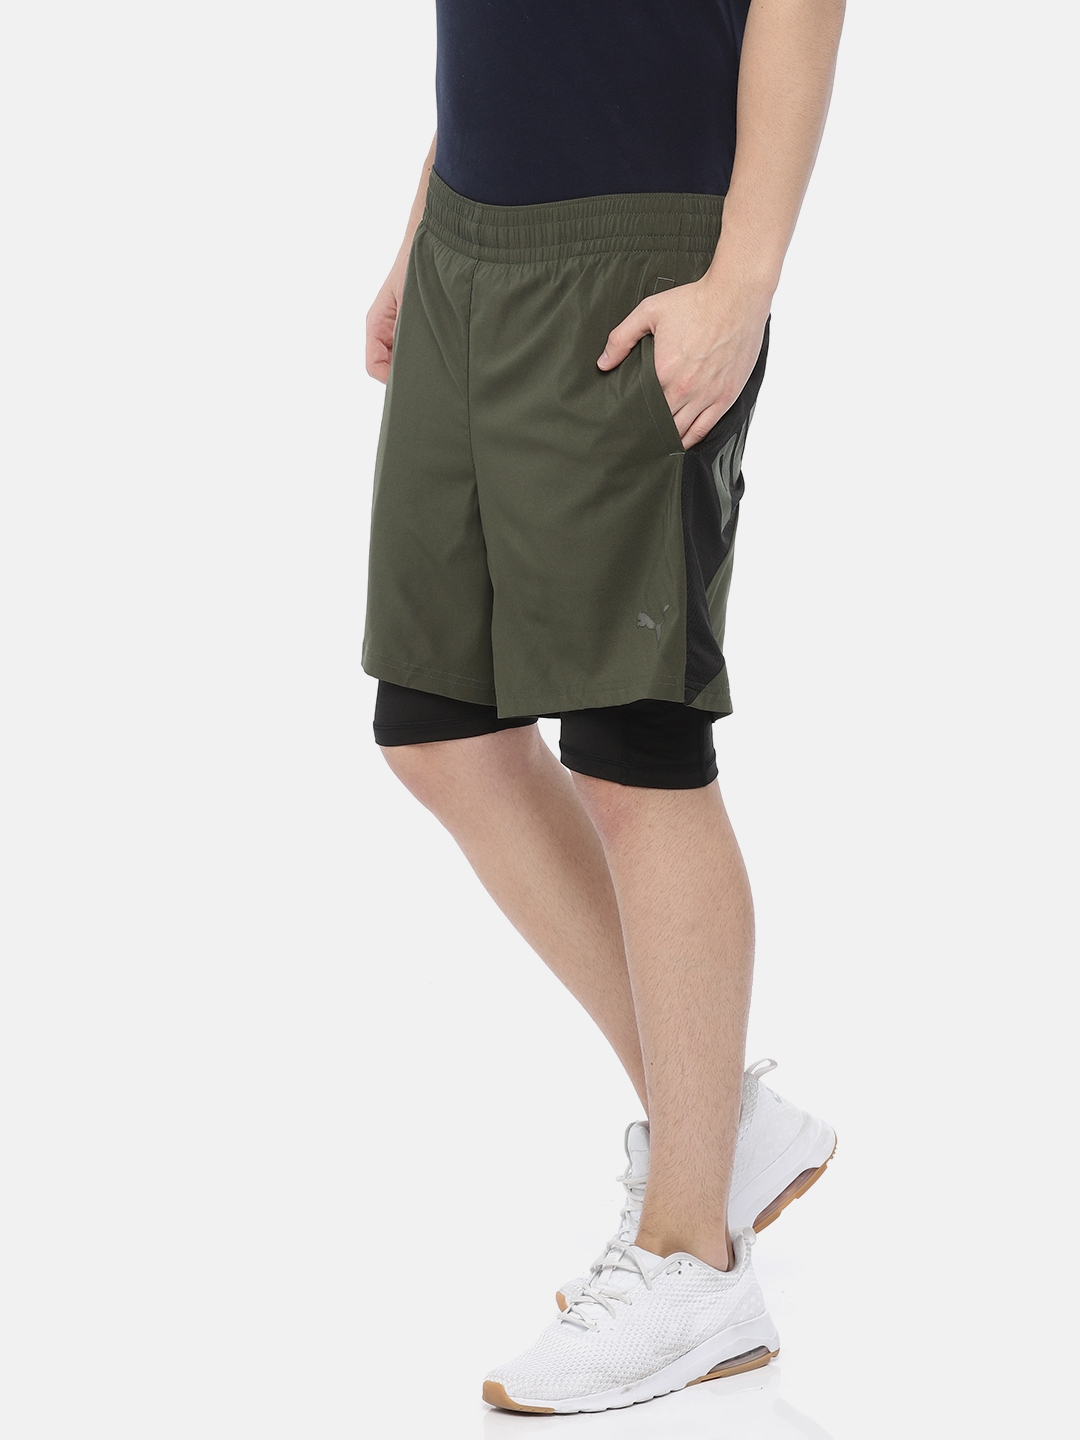 8ff92652c3 Buy Puma Men Olive Green A.C.E. Woven 2in1 Shorts - Shorts for Men ...